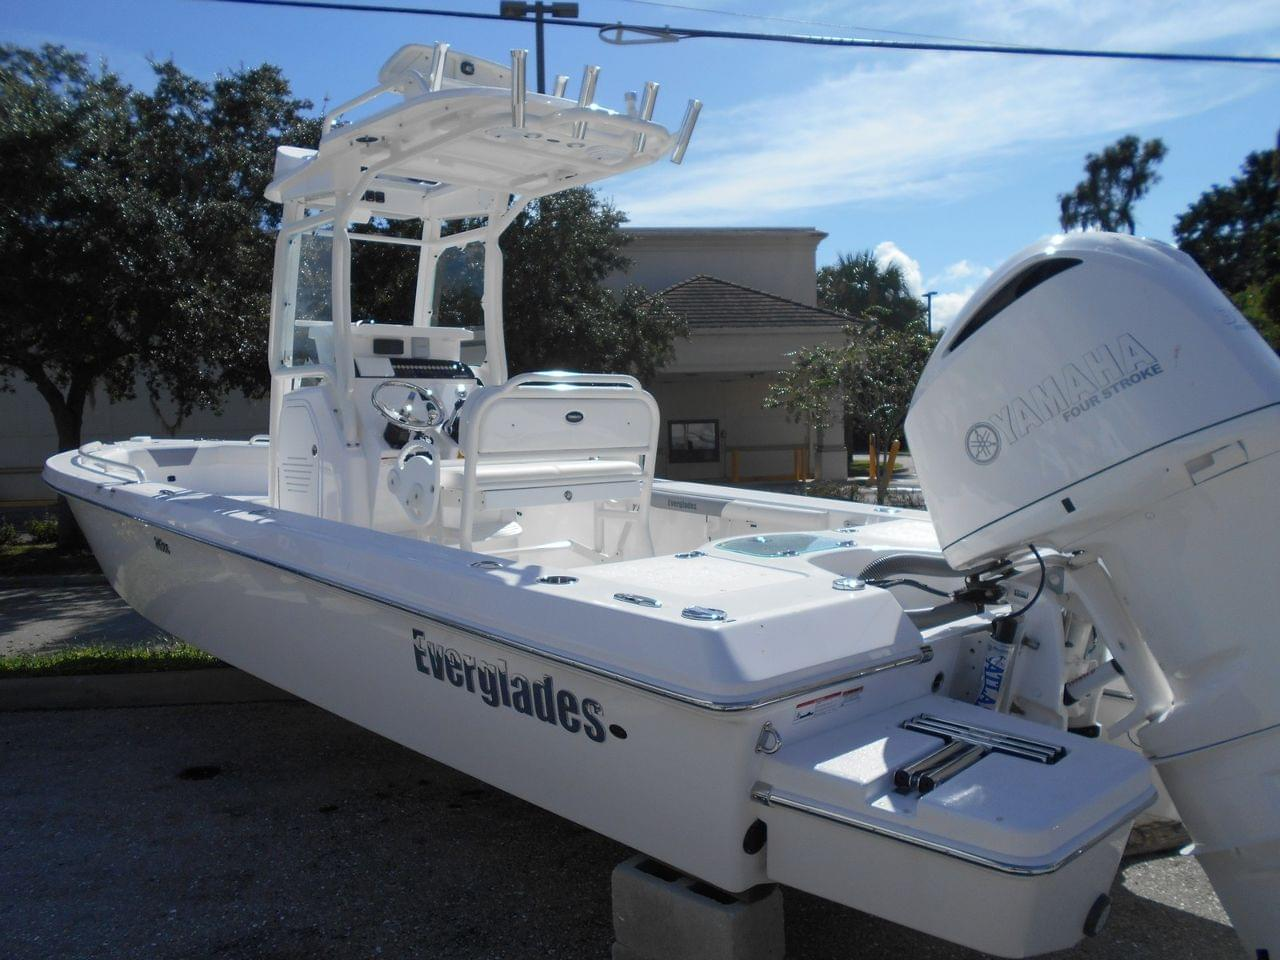 Supra Boats For Sale >> New 2017 Everglades 243 CC, Stock #44314-B1 - The Boat House